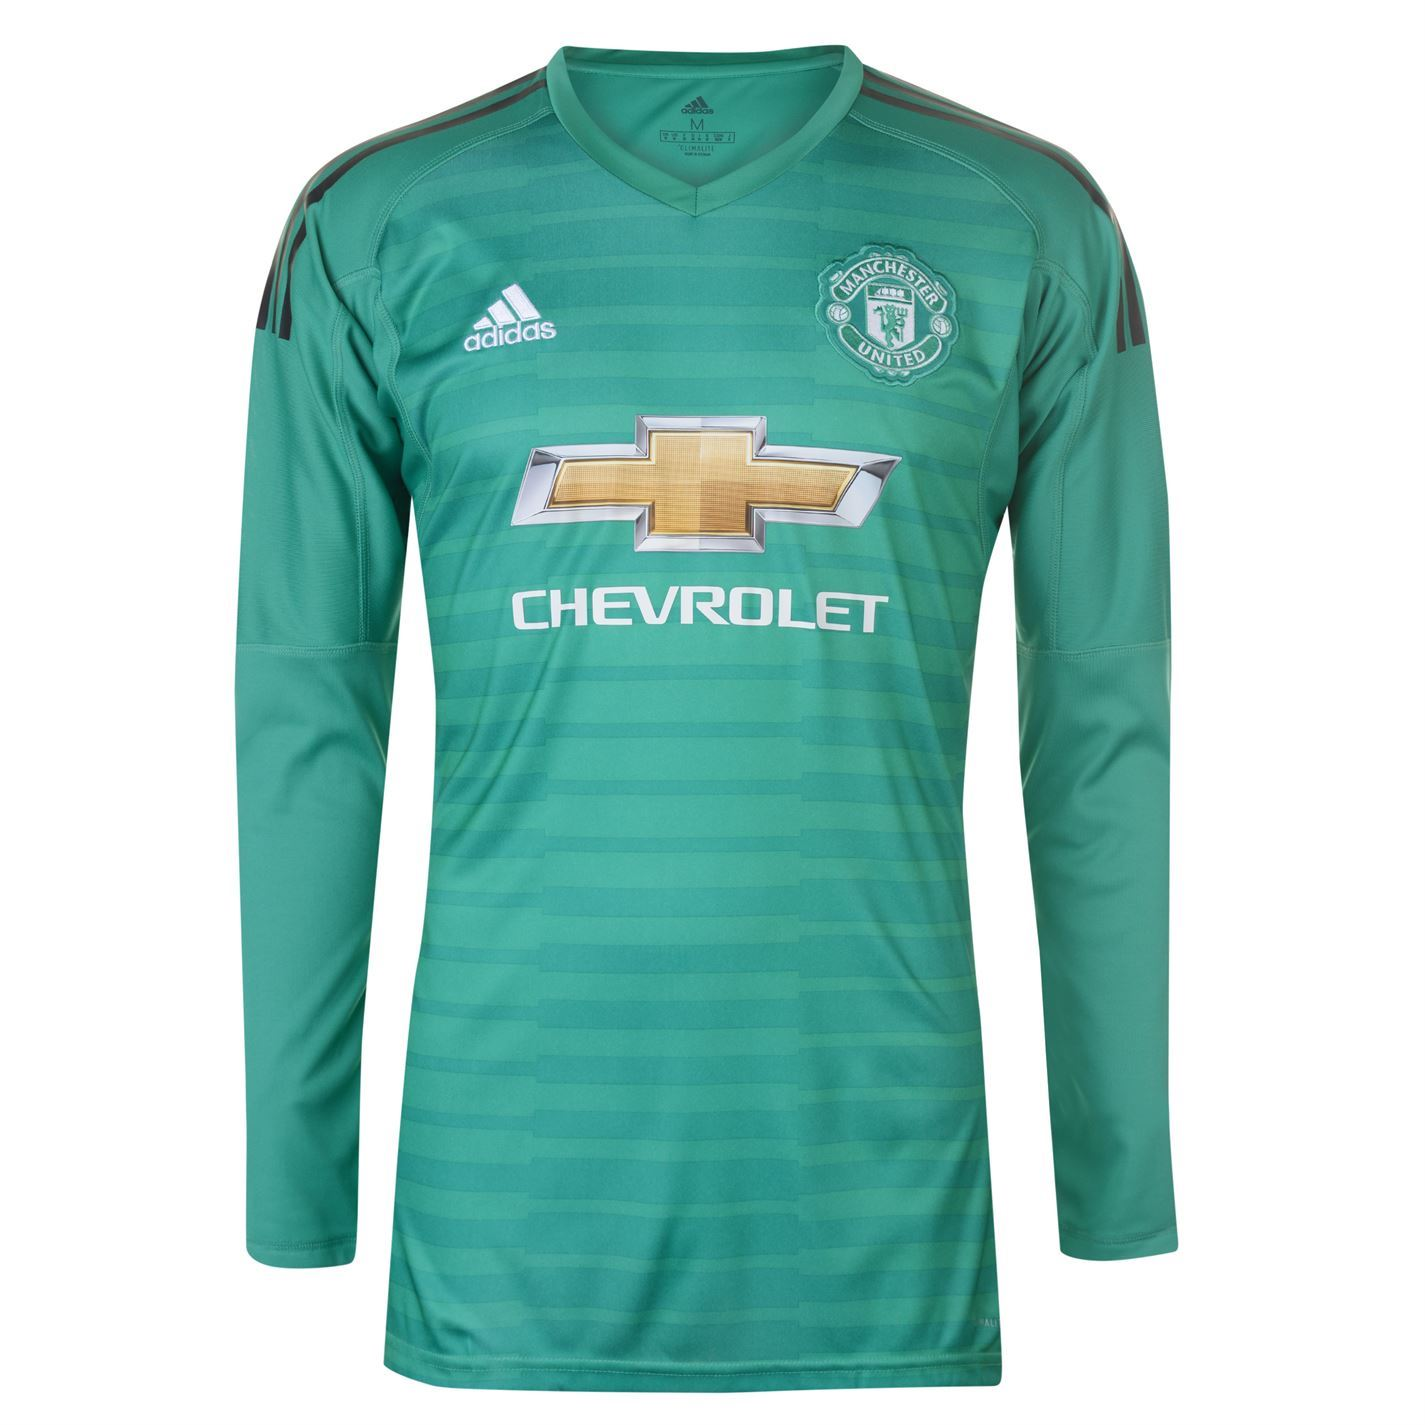 28ec0785a7c ... long sleeves soccer club jersey 00b92 58840  coupon for adidas manchester  united home champions league goalkeeper top 2018 19 de gea 1.